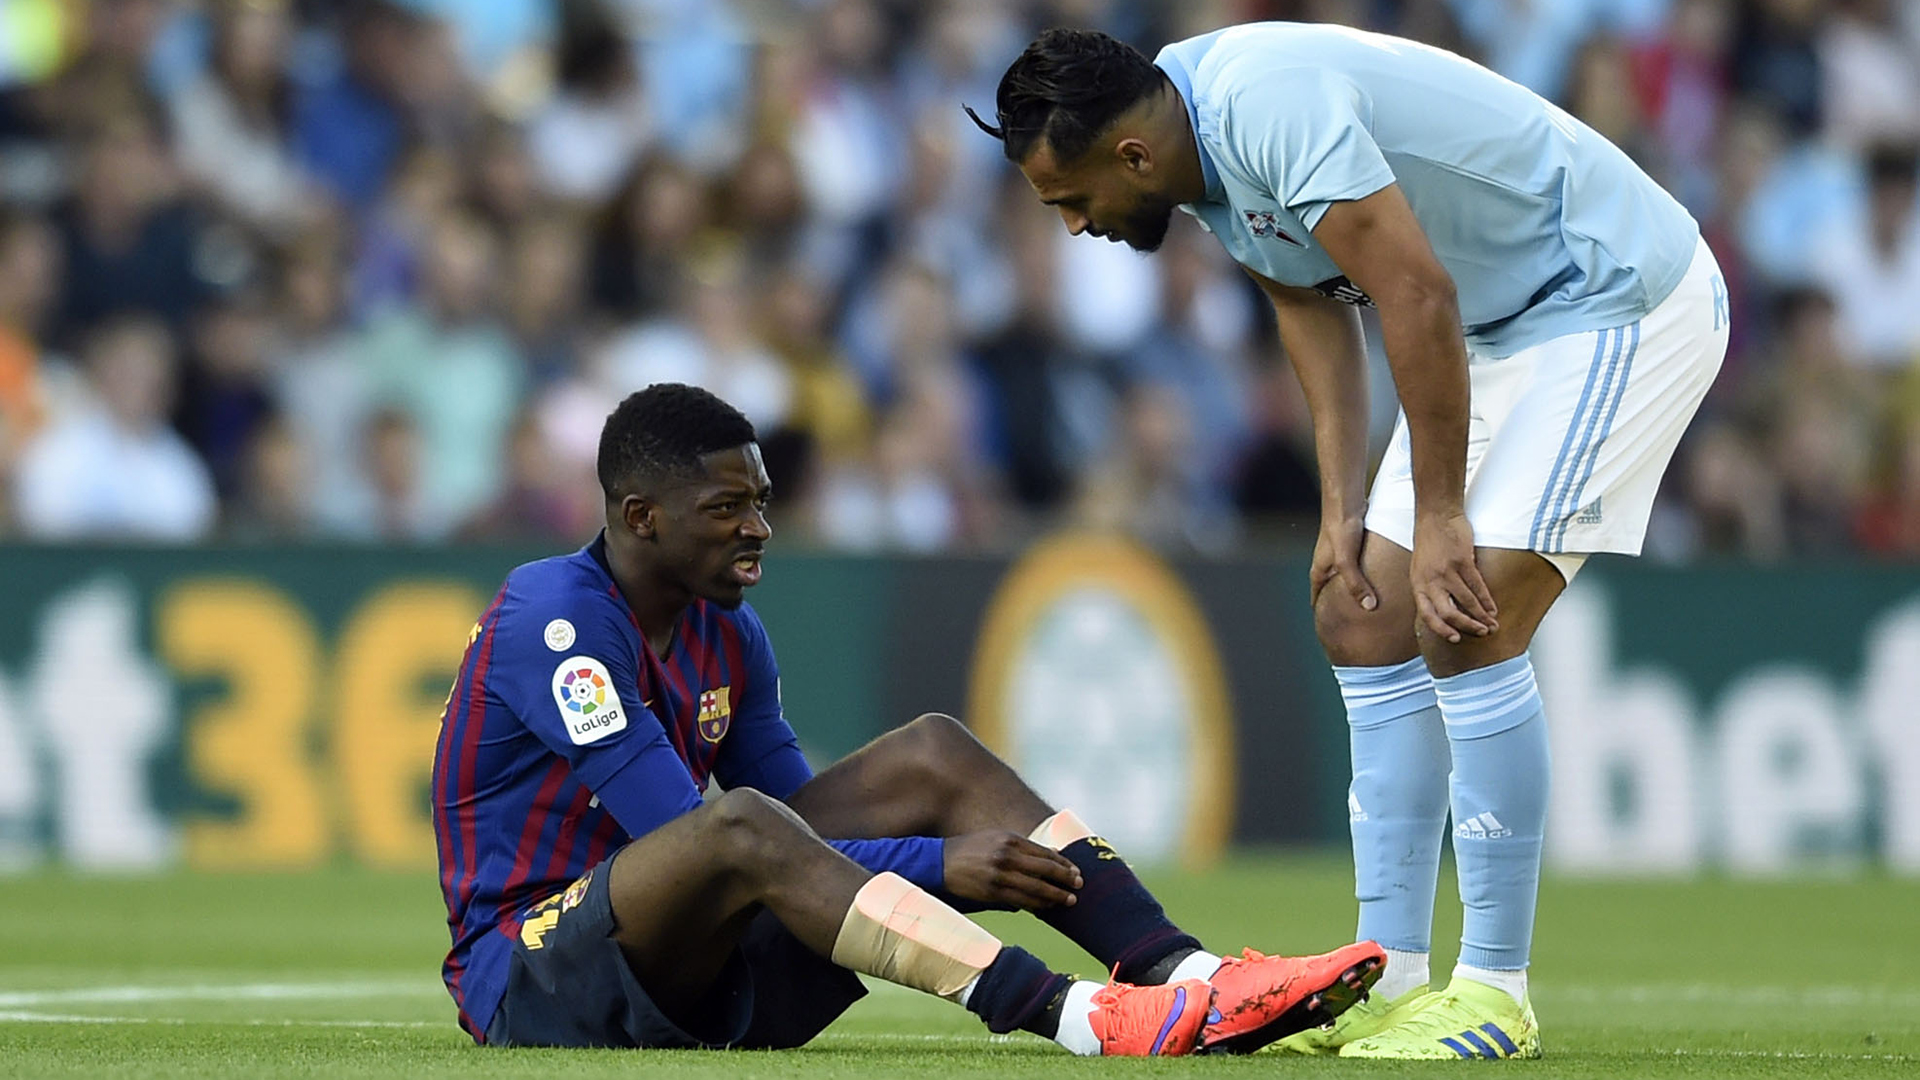 Hamstring injury likely to end season for Barca's Dembele